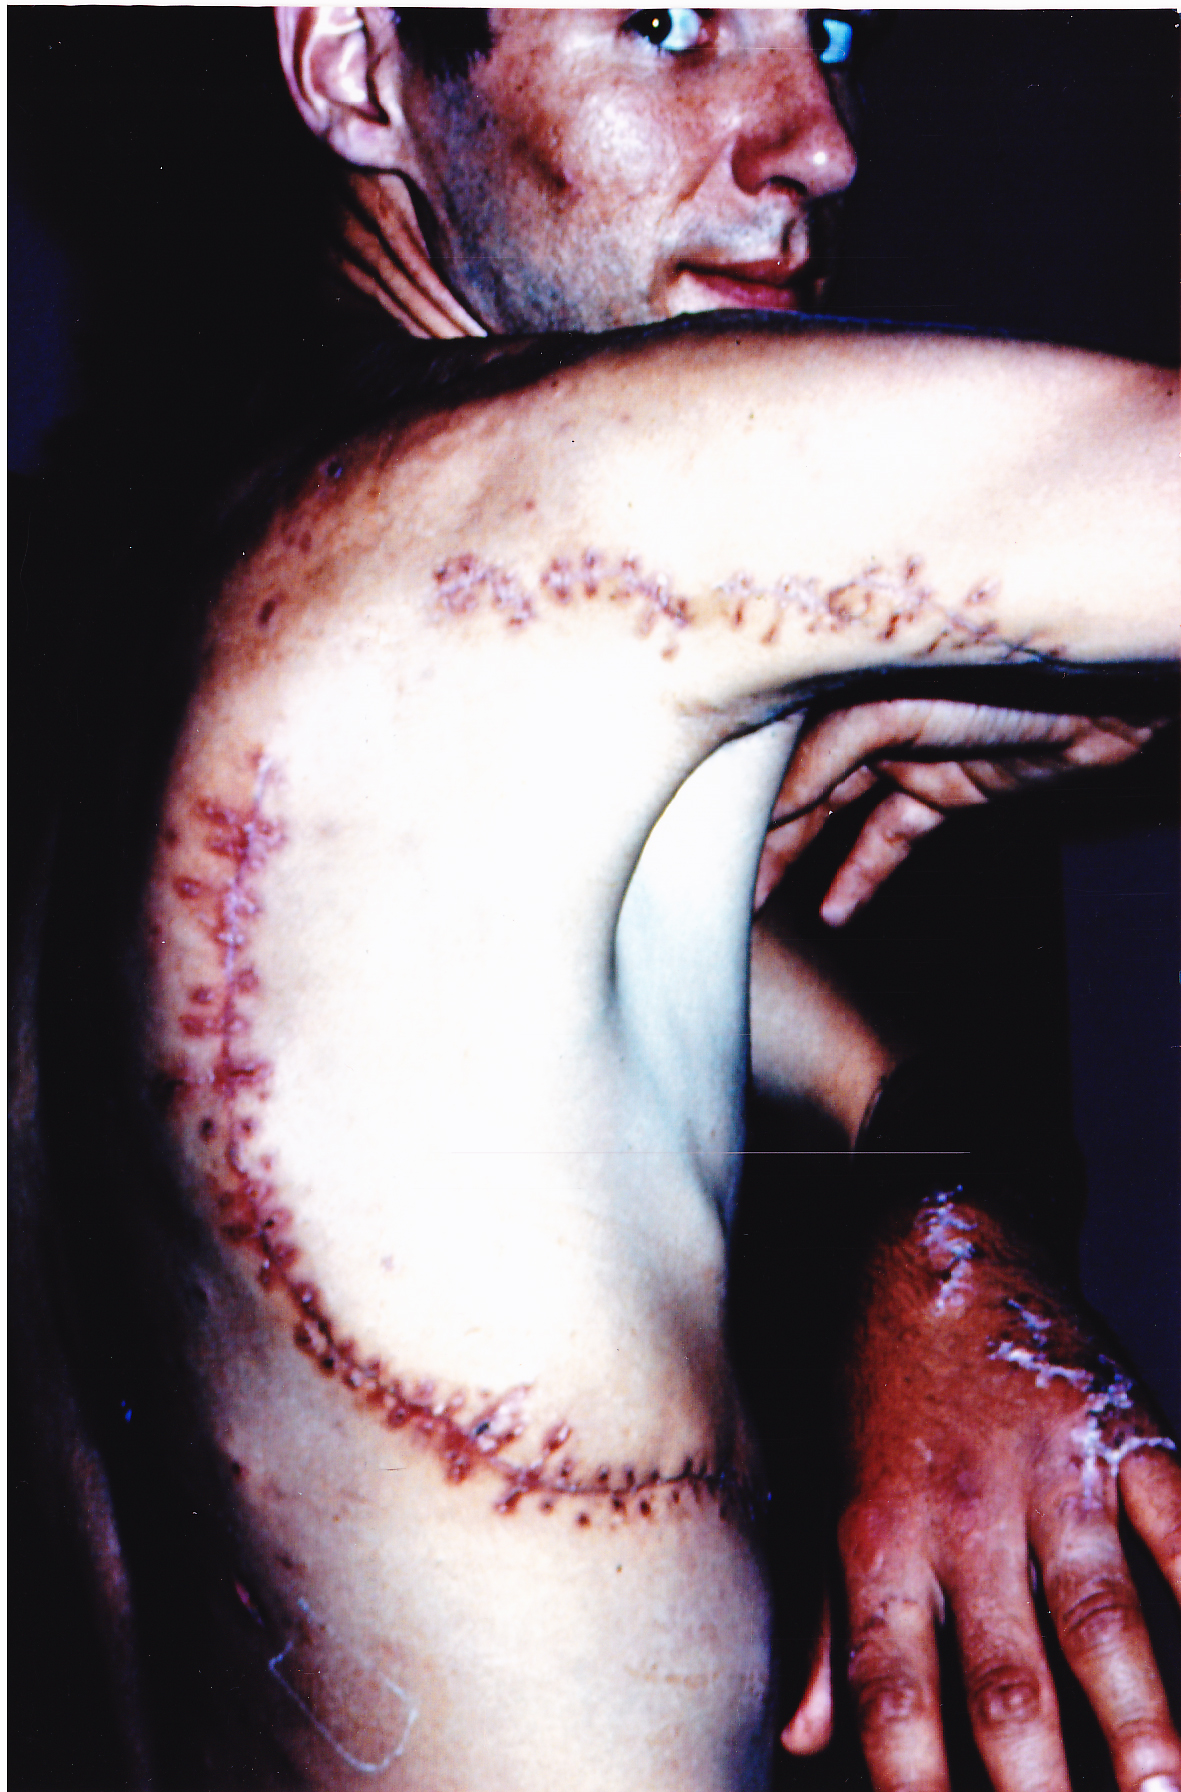 Rodney Fox's closed wound - 50 years since he was attacked by a shark in South Australia.